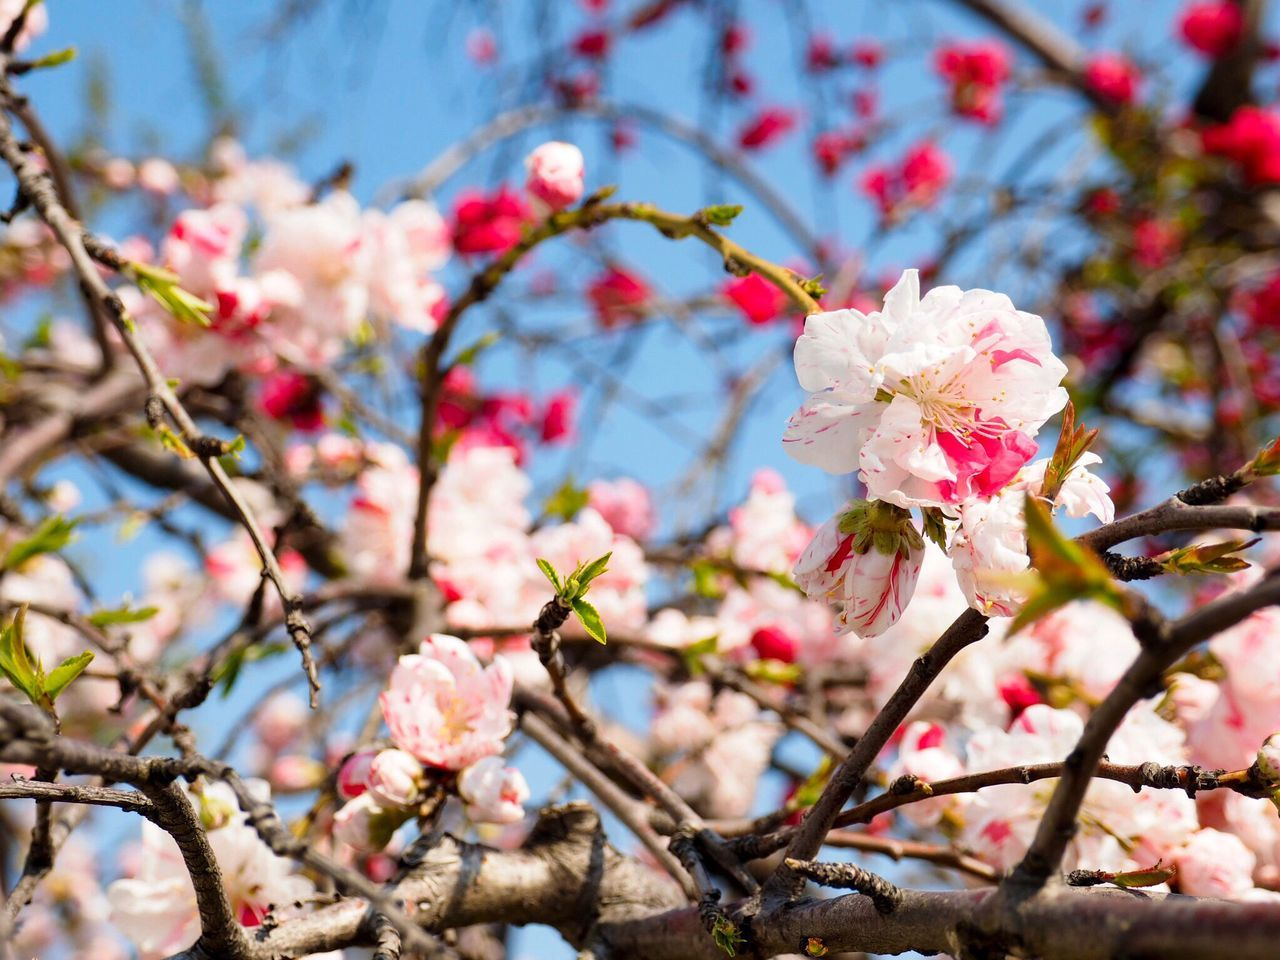 flower, fragility, growth, beauty in nature, branch, blossom, springtime, white color, tree, freshness, apple blossom, nature, petal, botany, twig, orchard, no people, apple tree, day, flower head, pink color, blooming, outdoors, plum blossom, close-up, low angle view, focus on foreground, stamen